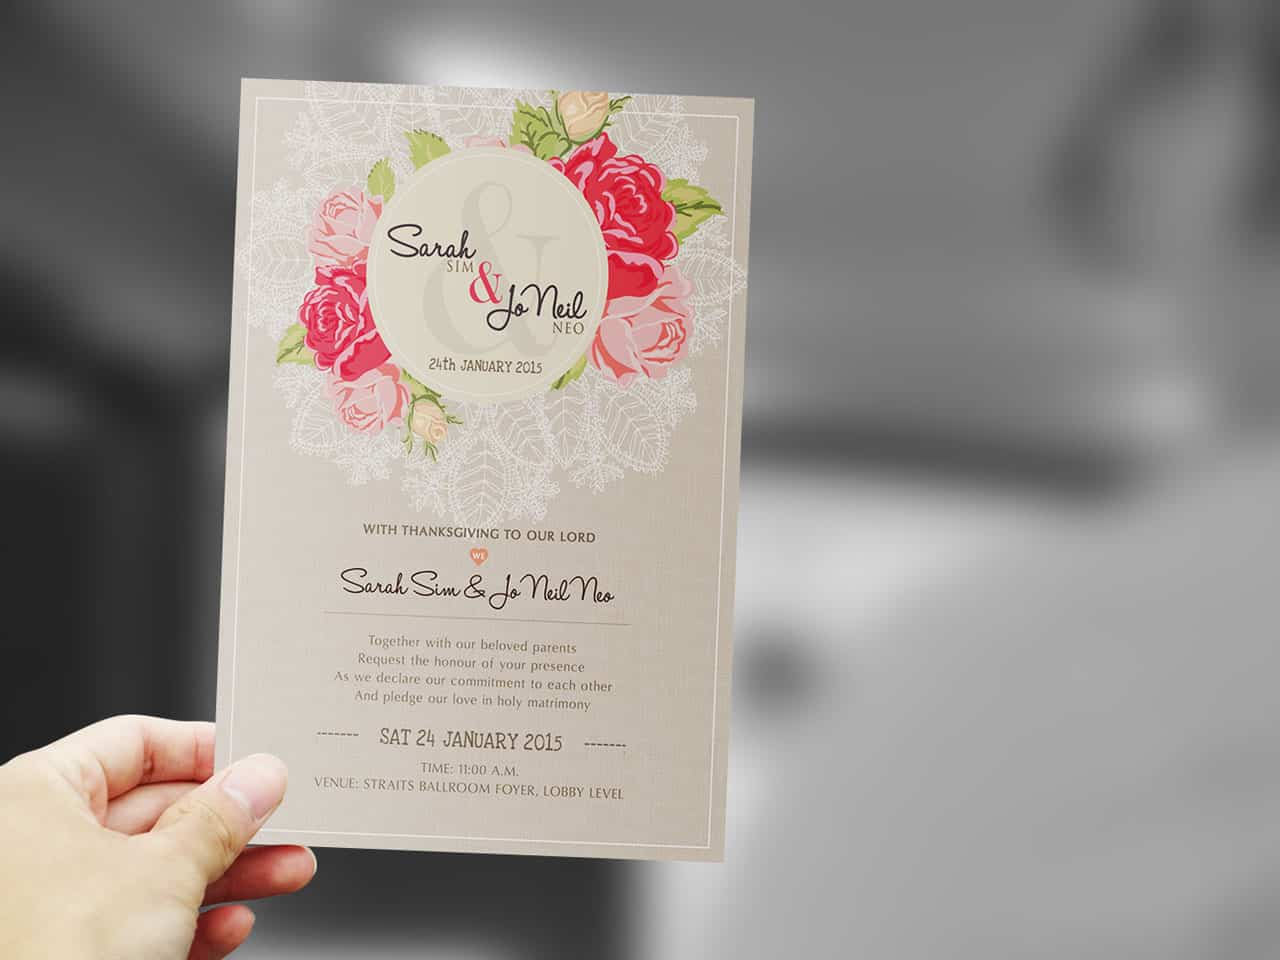 Wedding Invitations Award Winning Affordable Logo Design Specialist Graphic Sydney Brisbane Melbourne Adelaide Australia Australian